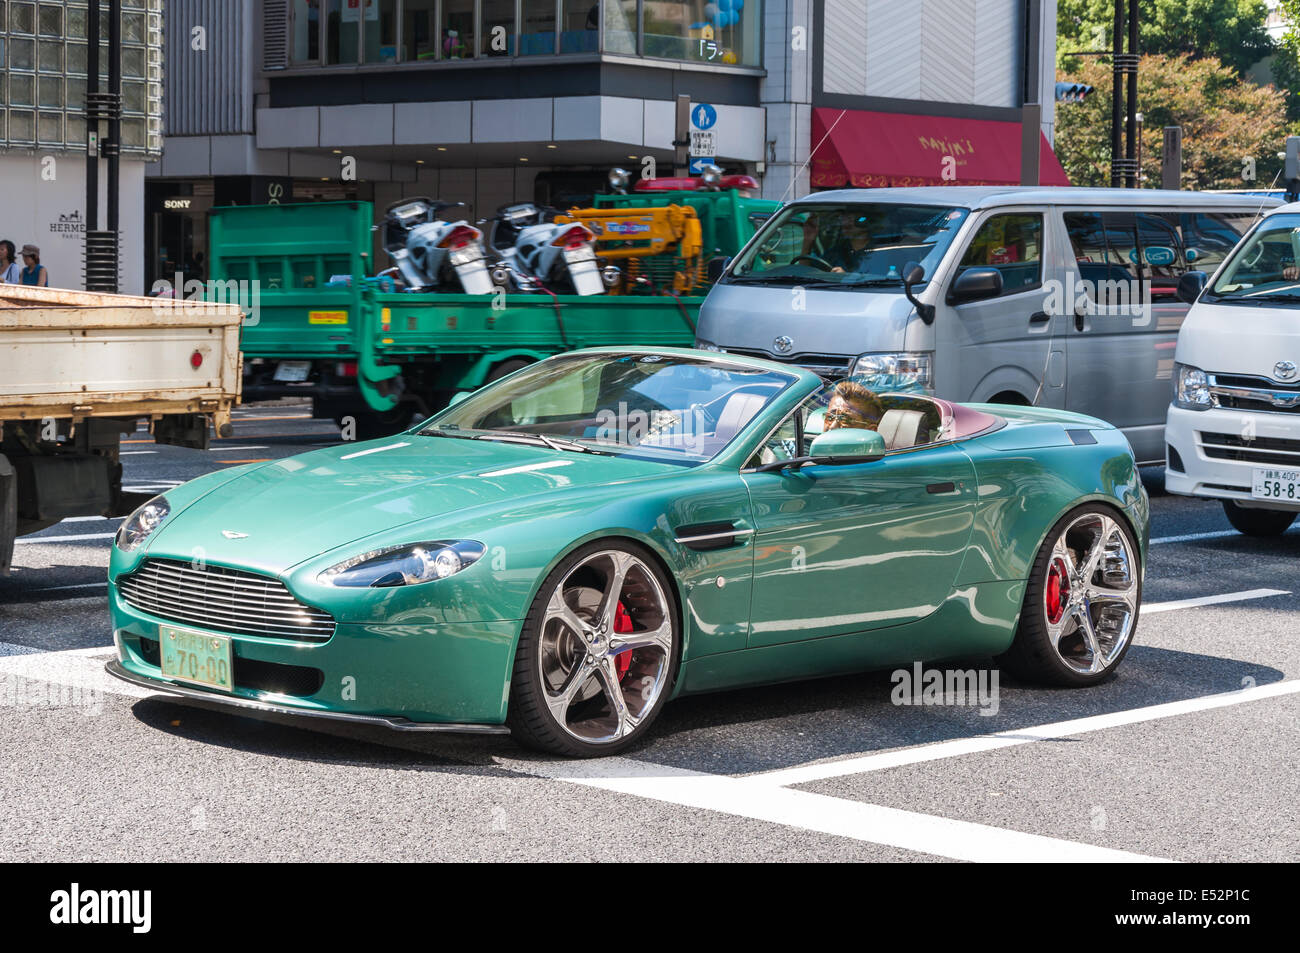 An Aston Martin stops at a traffic light in the upscale district of Ginza in Tokyo, Japan. - Stock Image